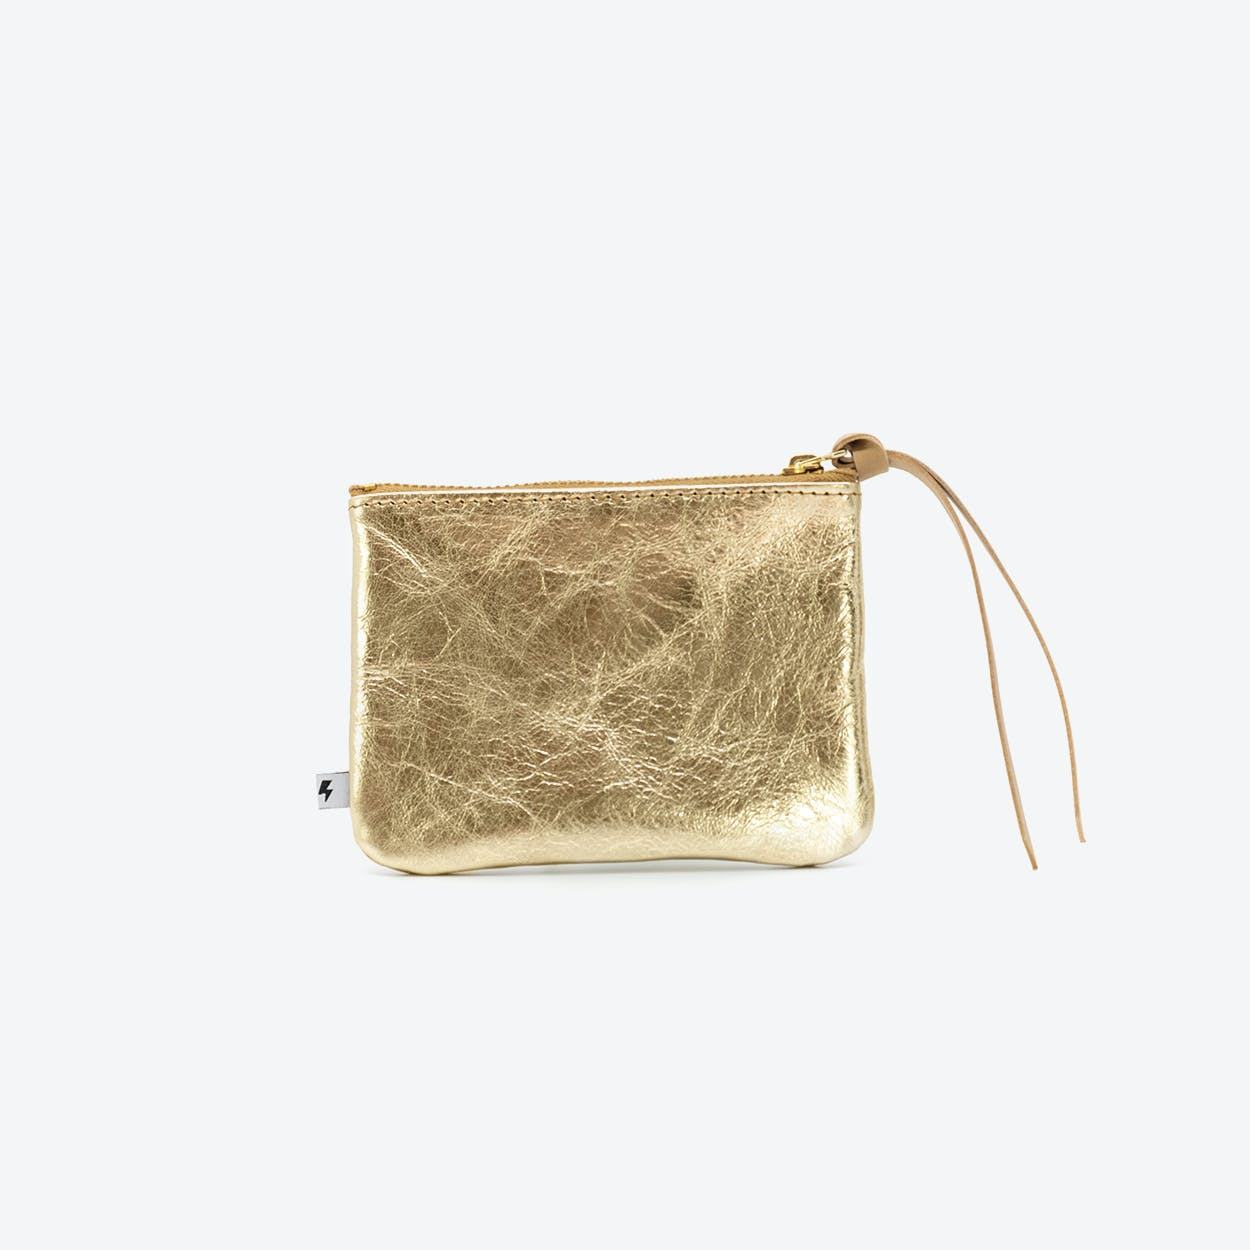 MAX Small Clutch in Brown / Gold